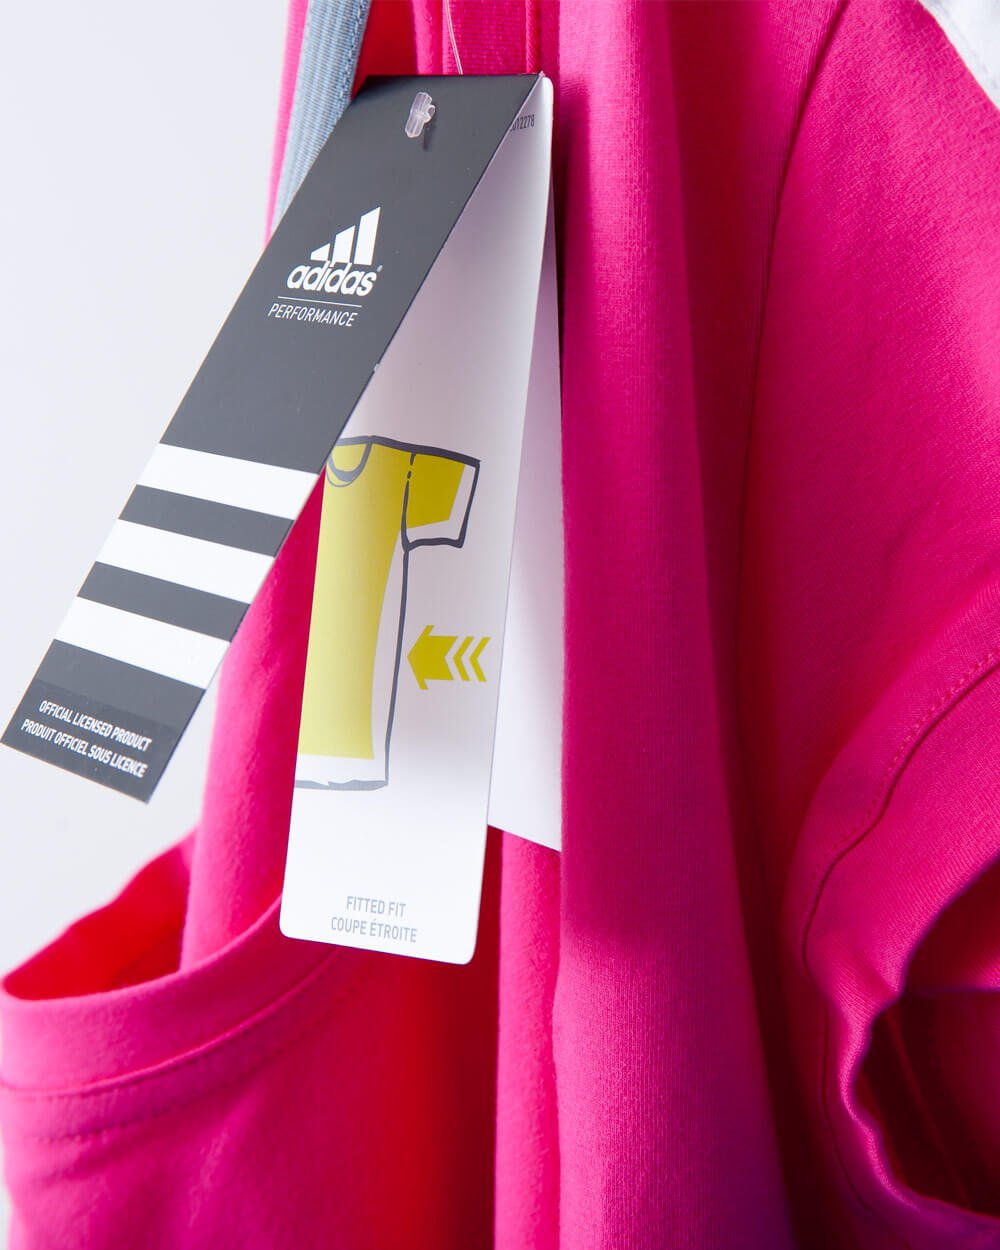 what type of innovation is the adidas 1 1 business model innovation and competitive imitation introduction schumpeter ful implementation of this business model type is not always obviousfor example, while.